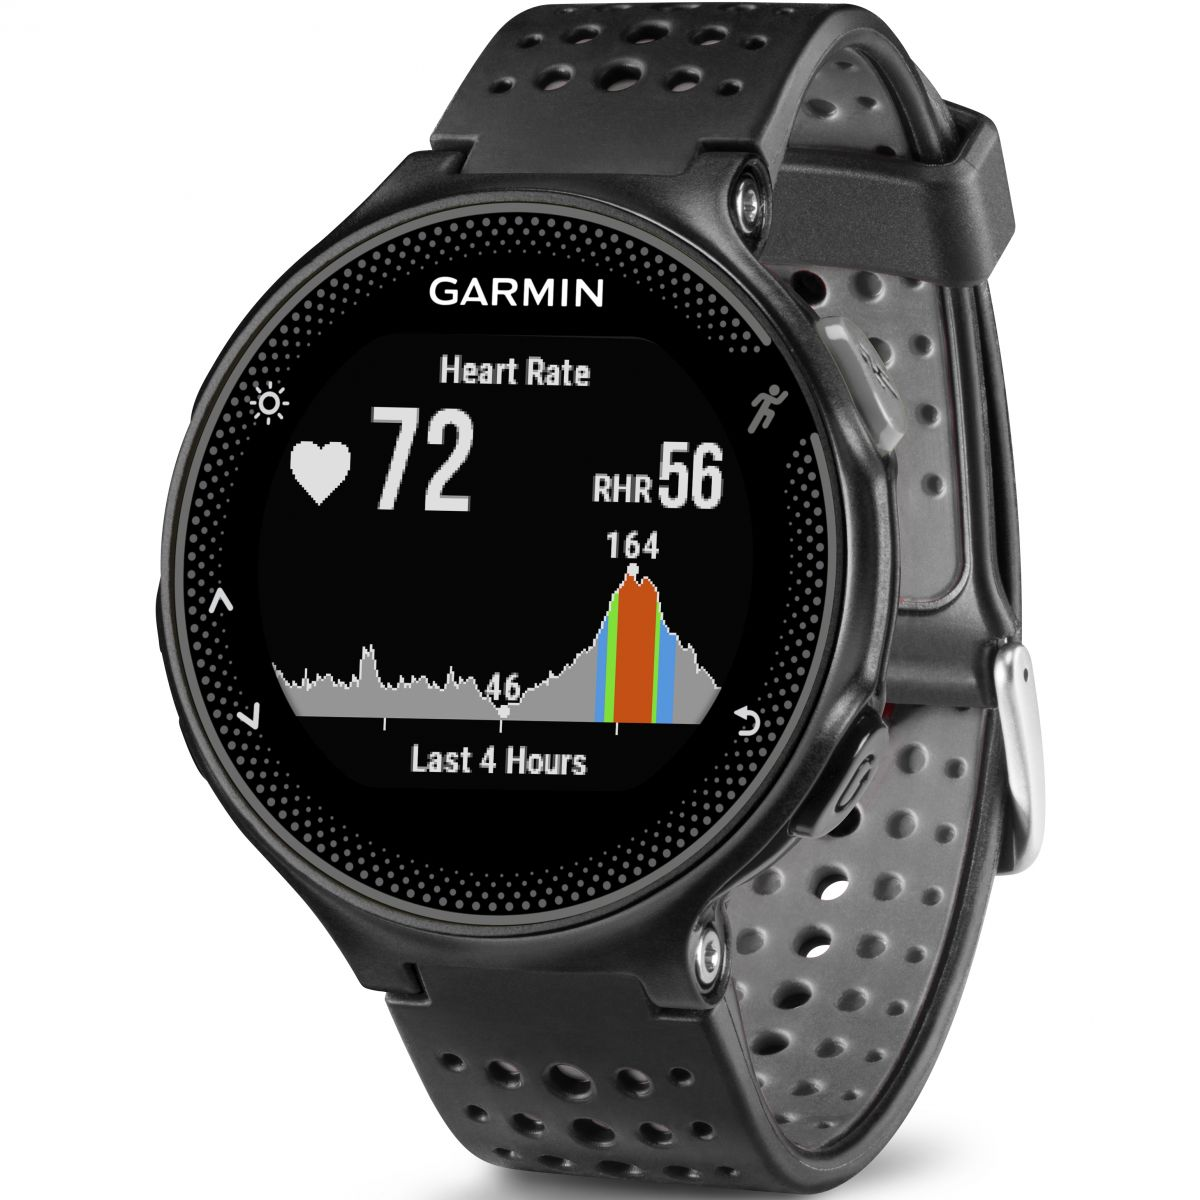 monitor heart watches by dp training gps garmin discountinued with rate discontinued wrist manufacturer device personal worn forerunner